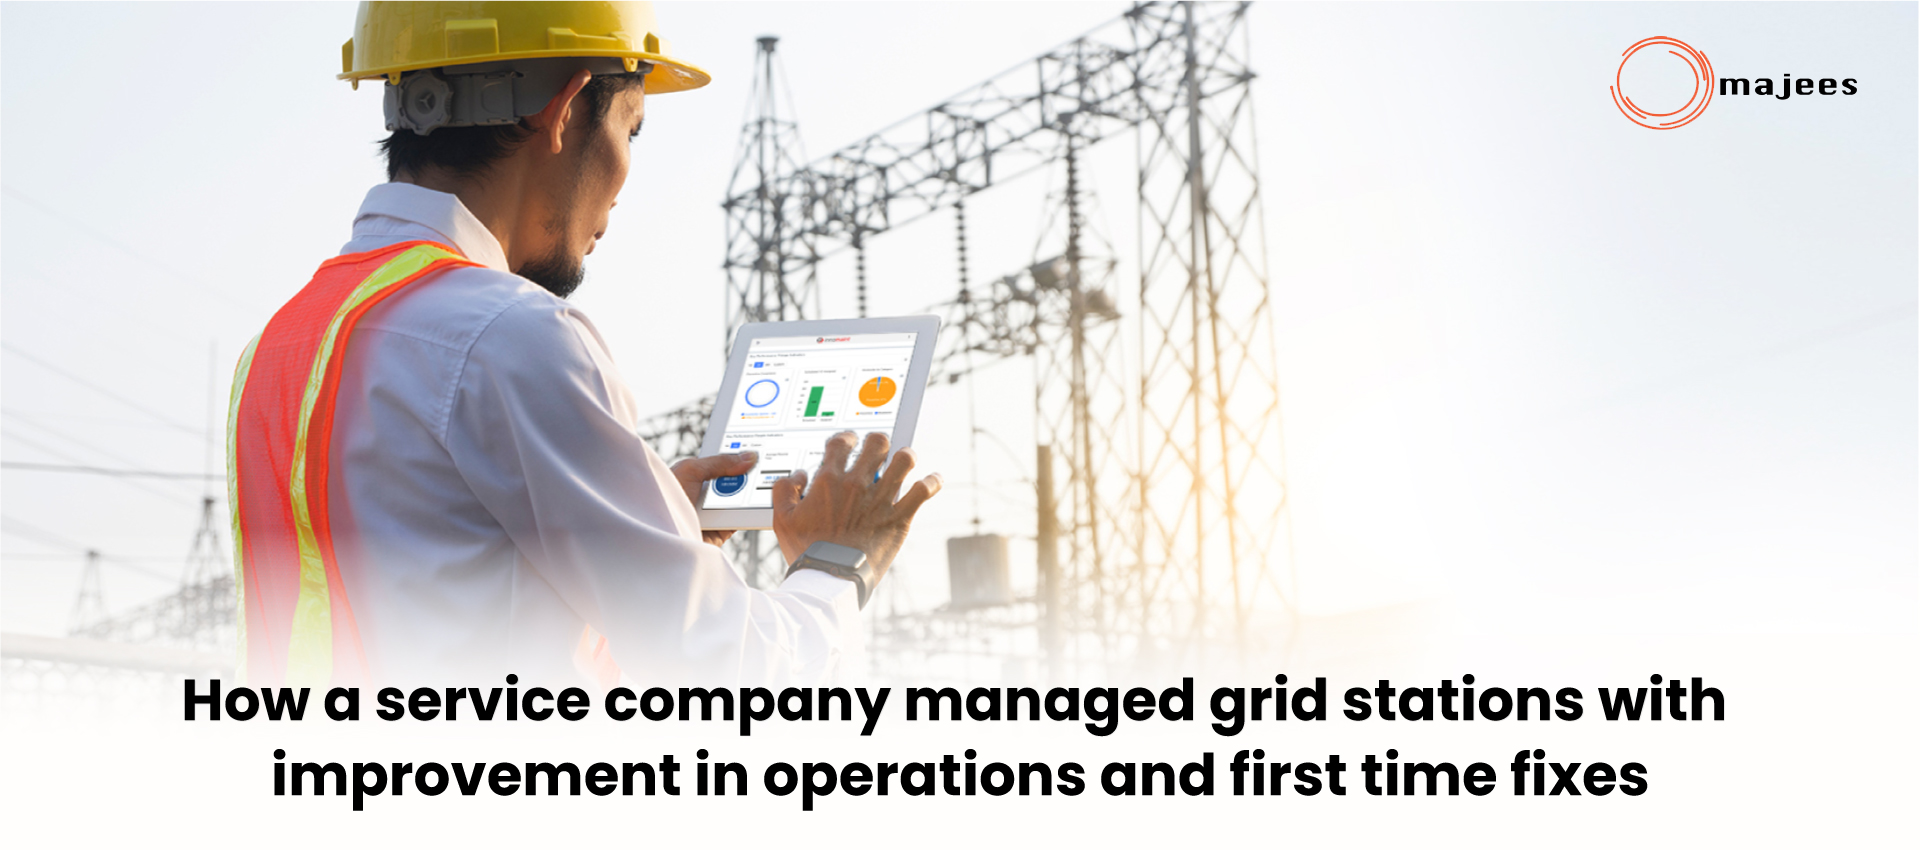 How a service company managed grid stations with improvement in